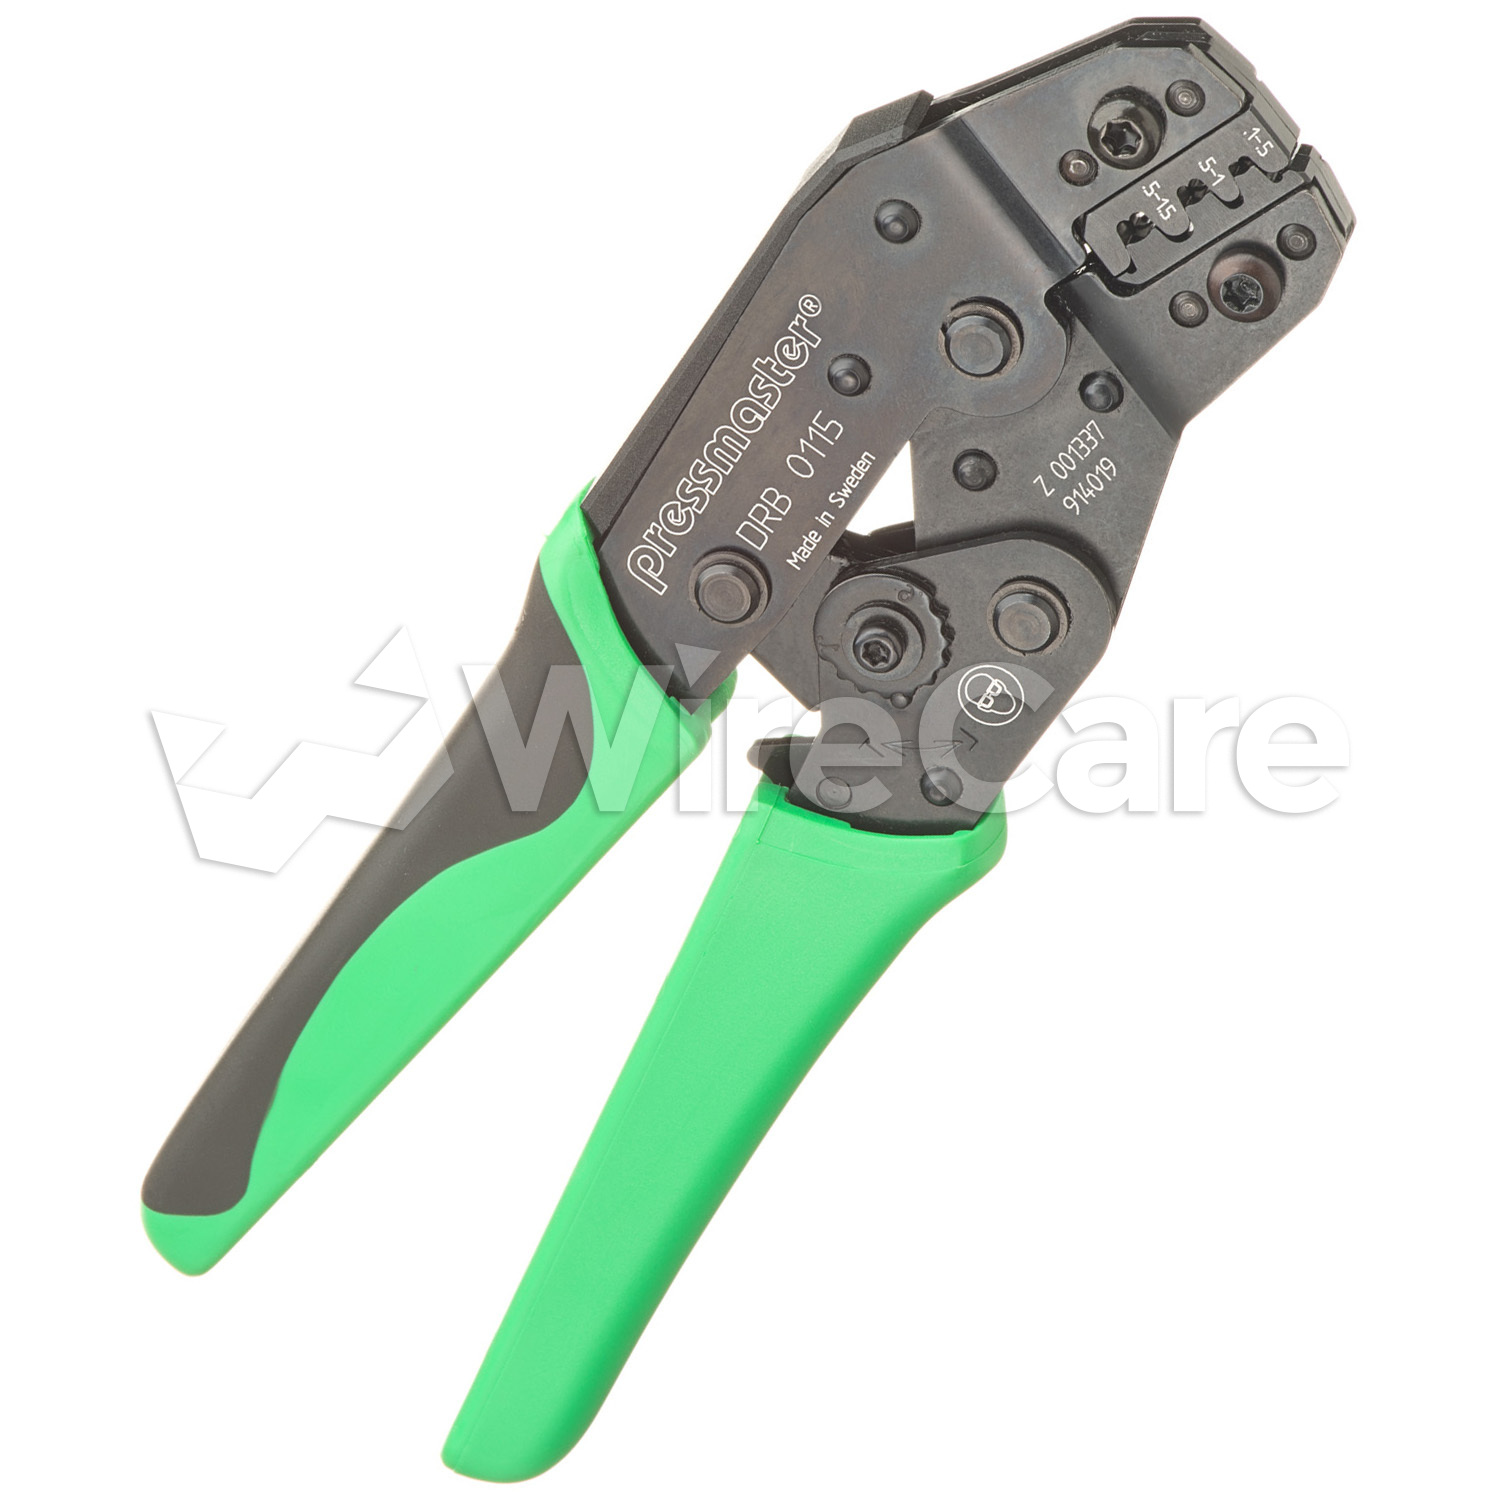 DRB-0115 - Crimper for Non-Insulated Open Barrel Terminals and Lugs, 16-26 AWG.